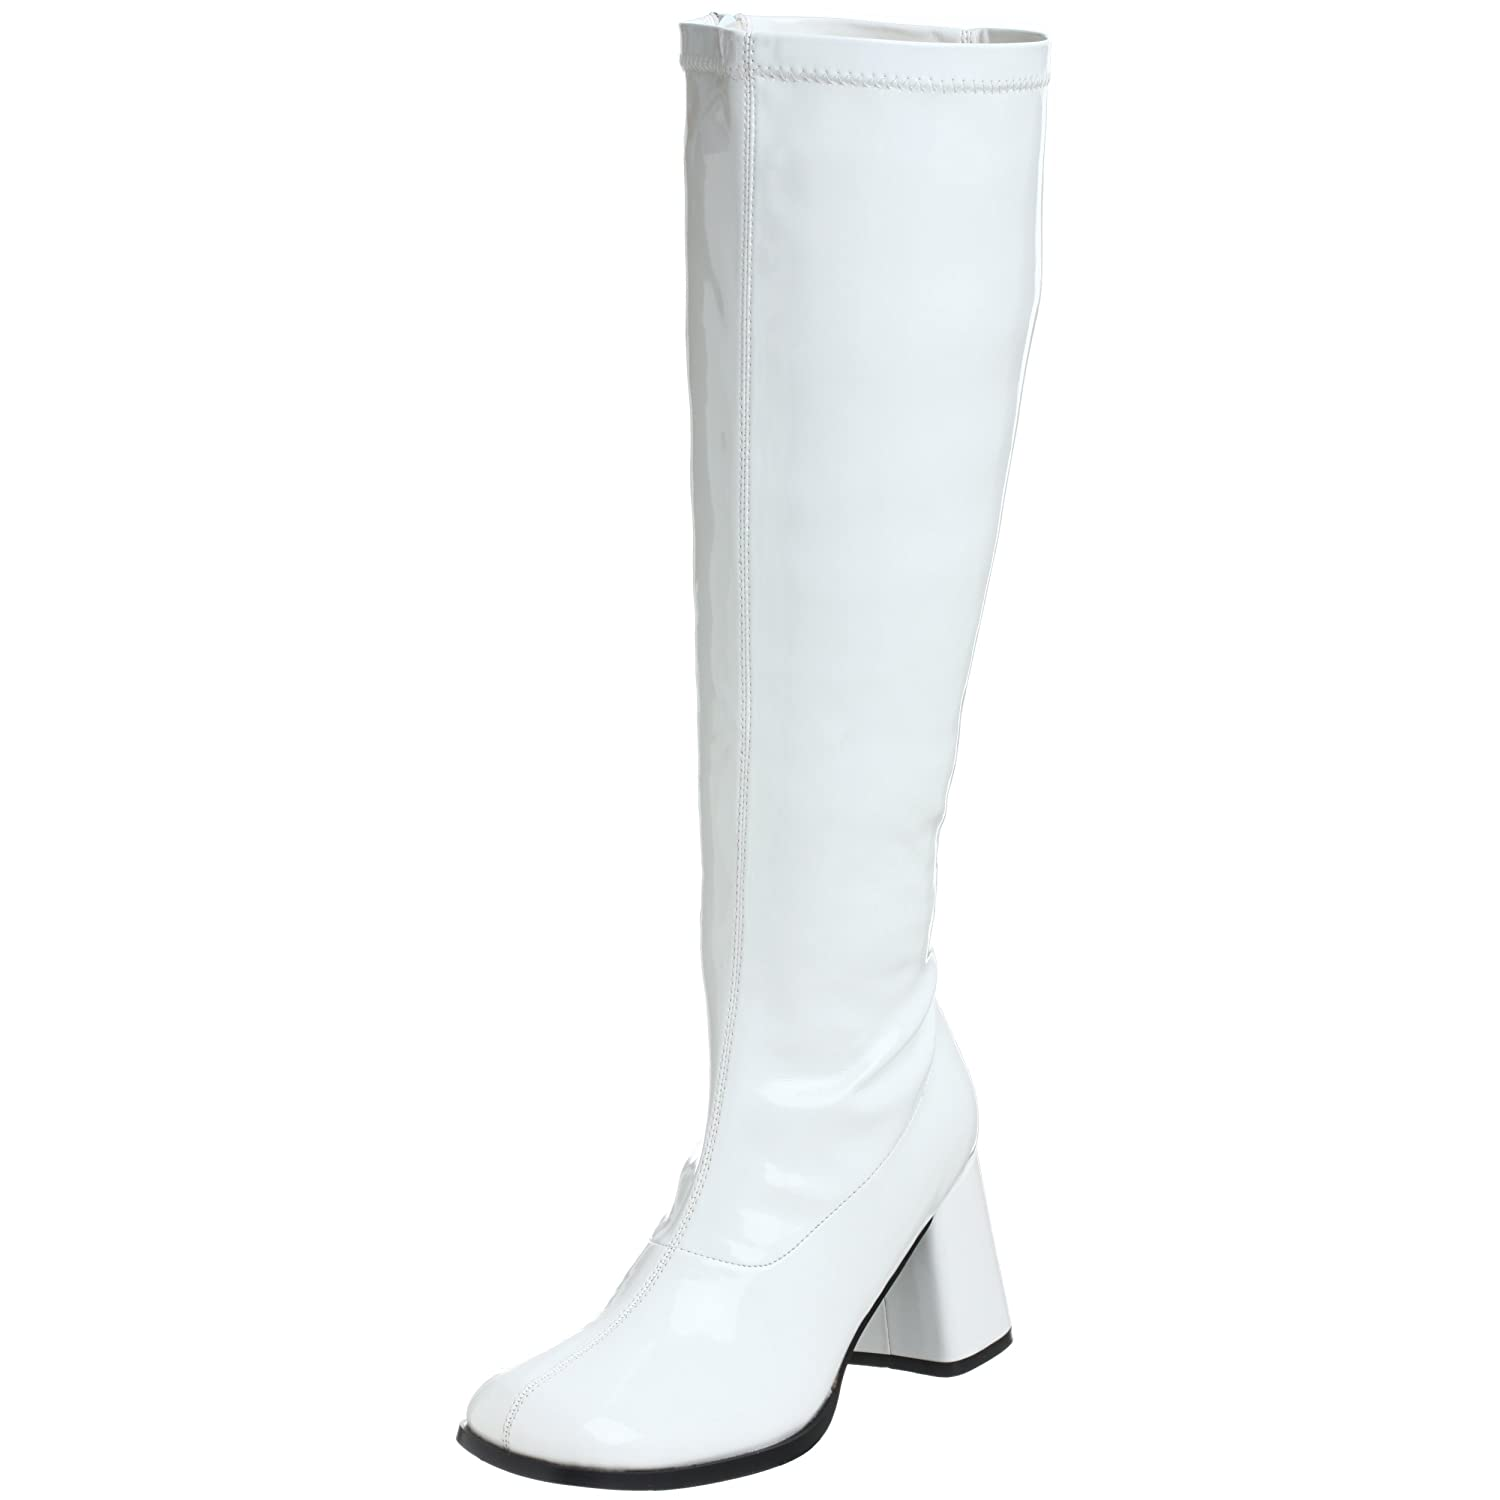 f8c8c0c482a Funtasma Women's Gogo 300 Wide Calf Boot: Buy Online at Low Prices ...